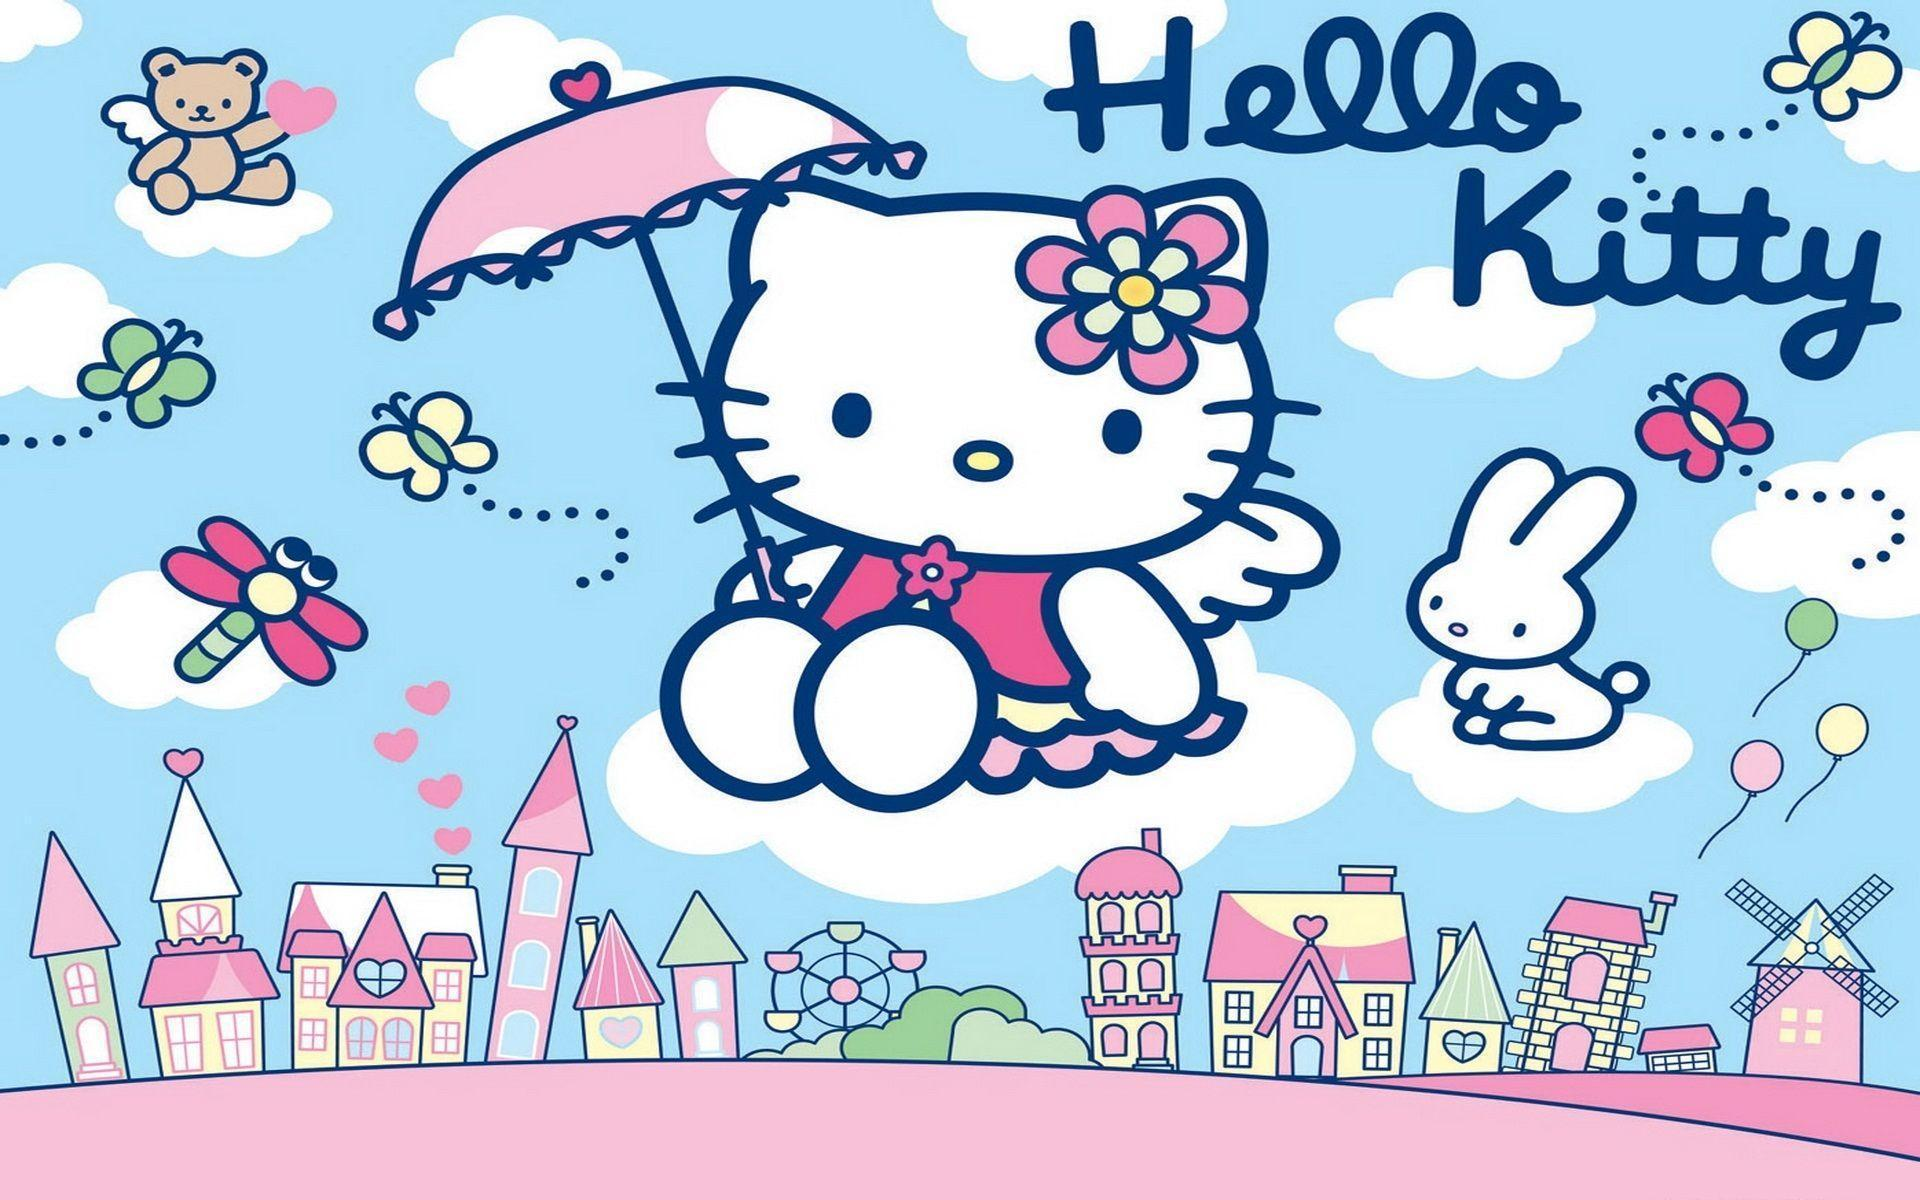 Hello kitty wallpapers for tablet wallpaper cave wallpapers for hello kitty wallpaper for android tablet voltagebd Image collections